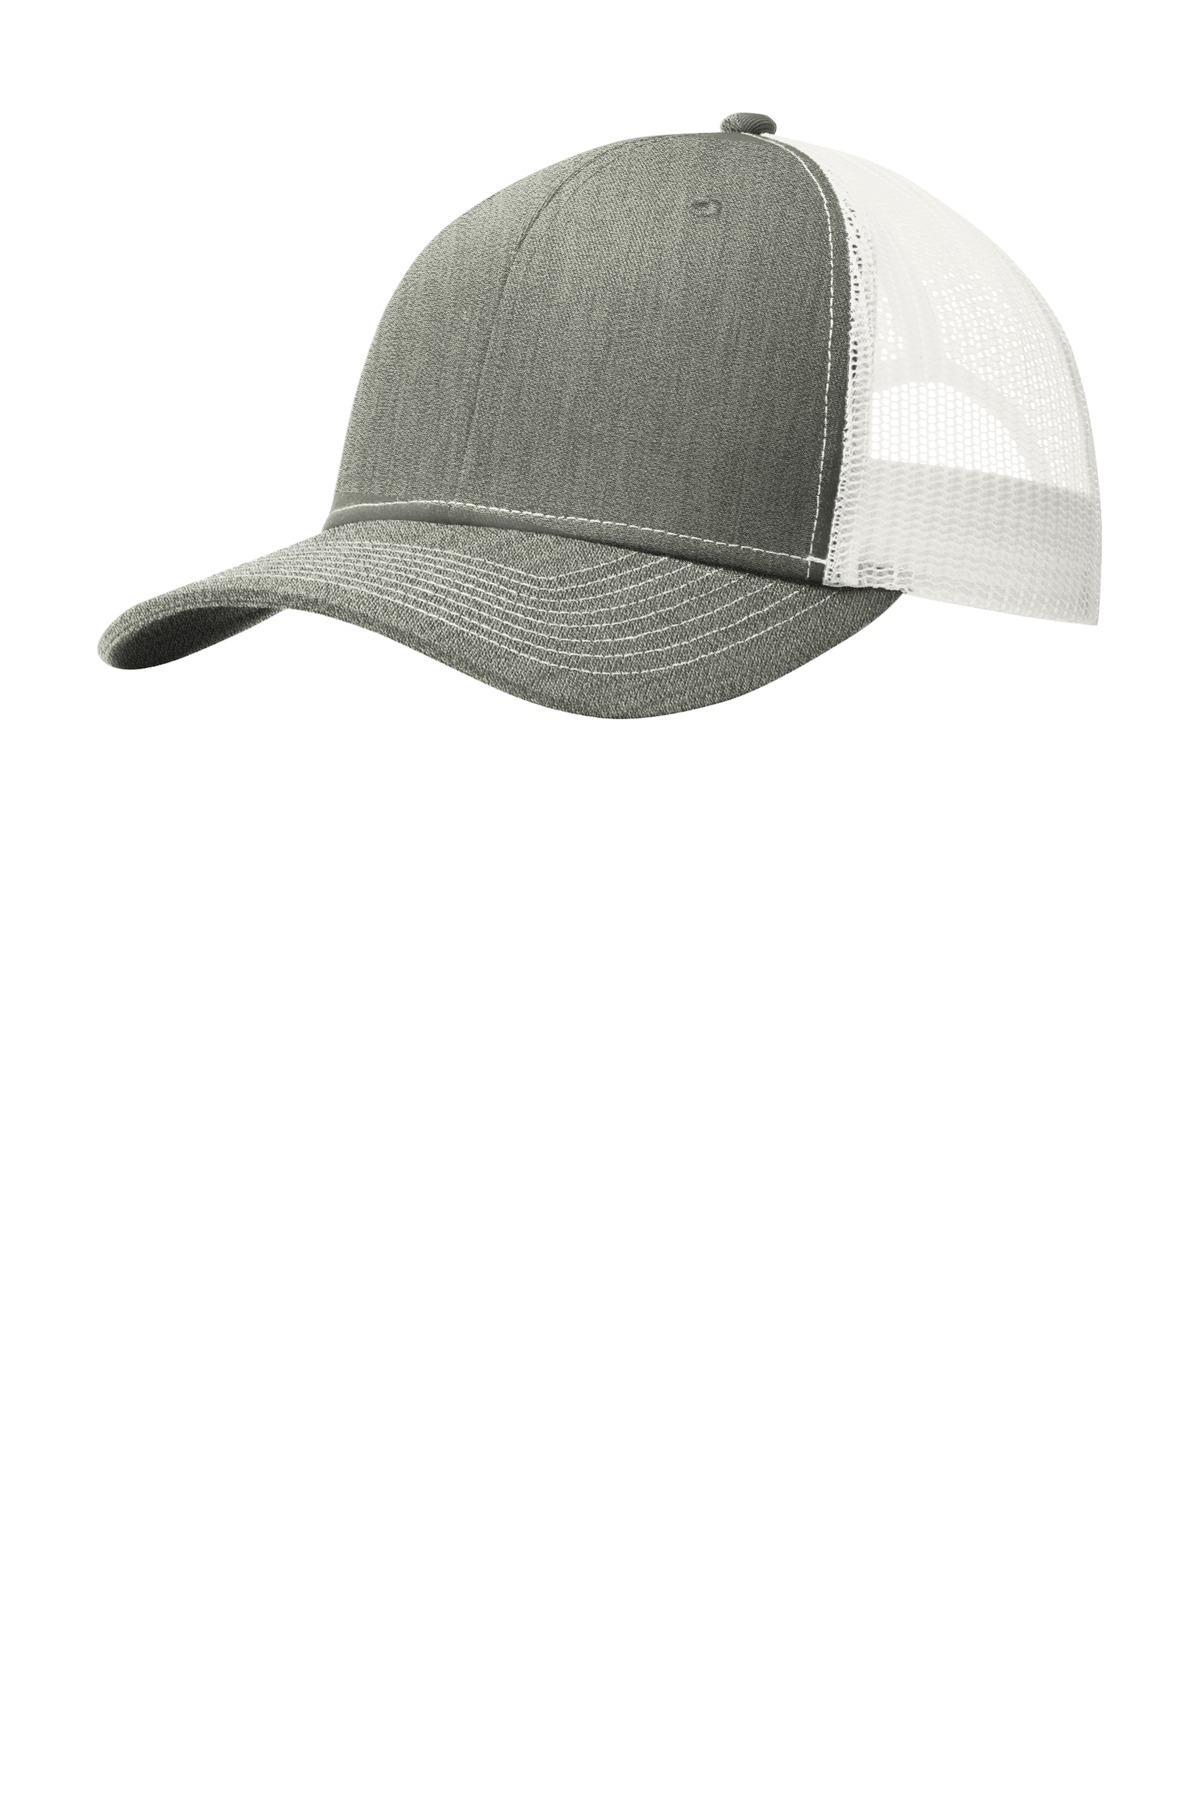 Port Authority ®  Snapback Trucker Cap. C112 - Heather Grey/ White